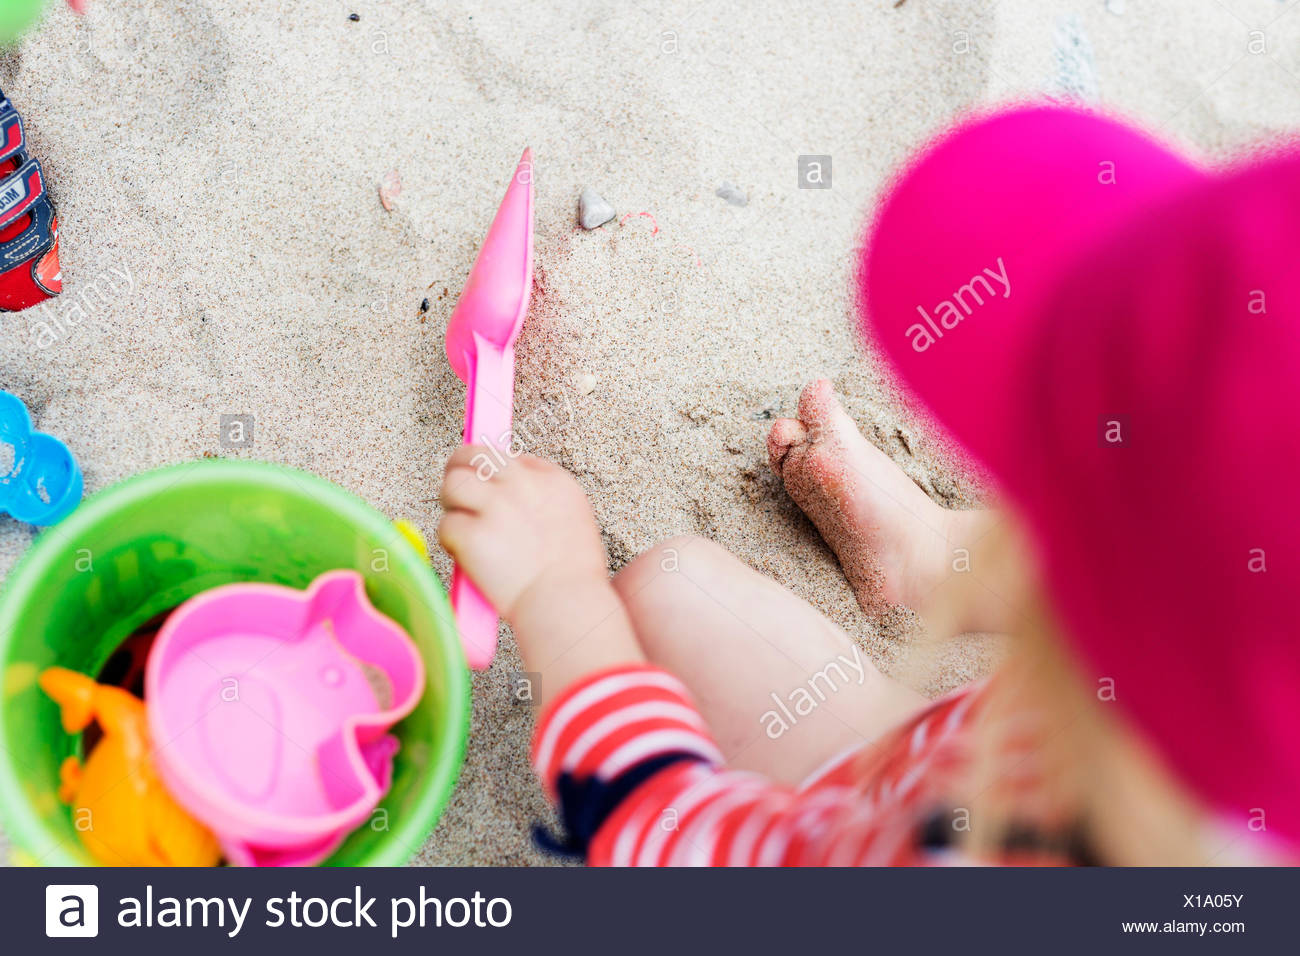 High angle view of girl playing with toys on sand at beach - Stock Image